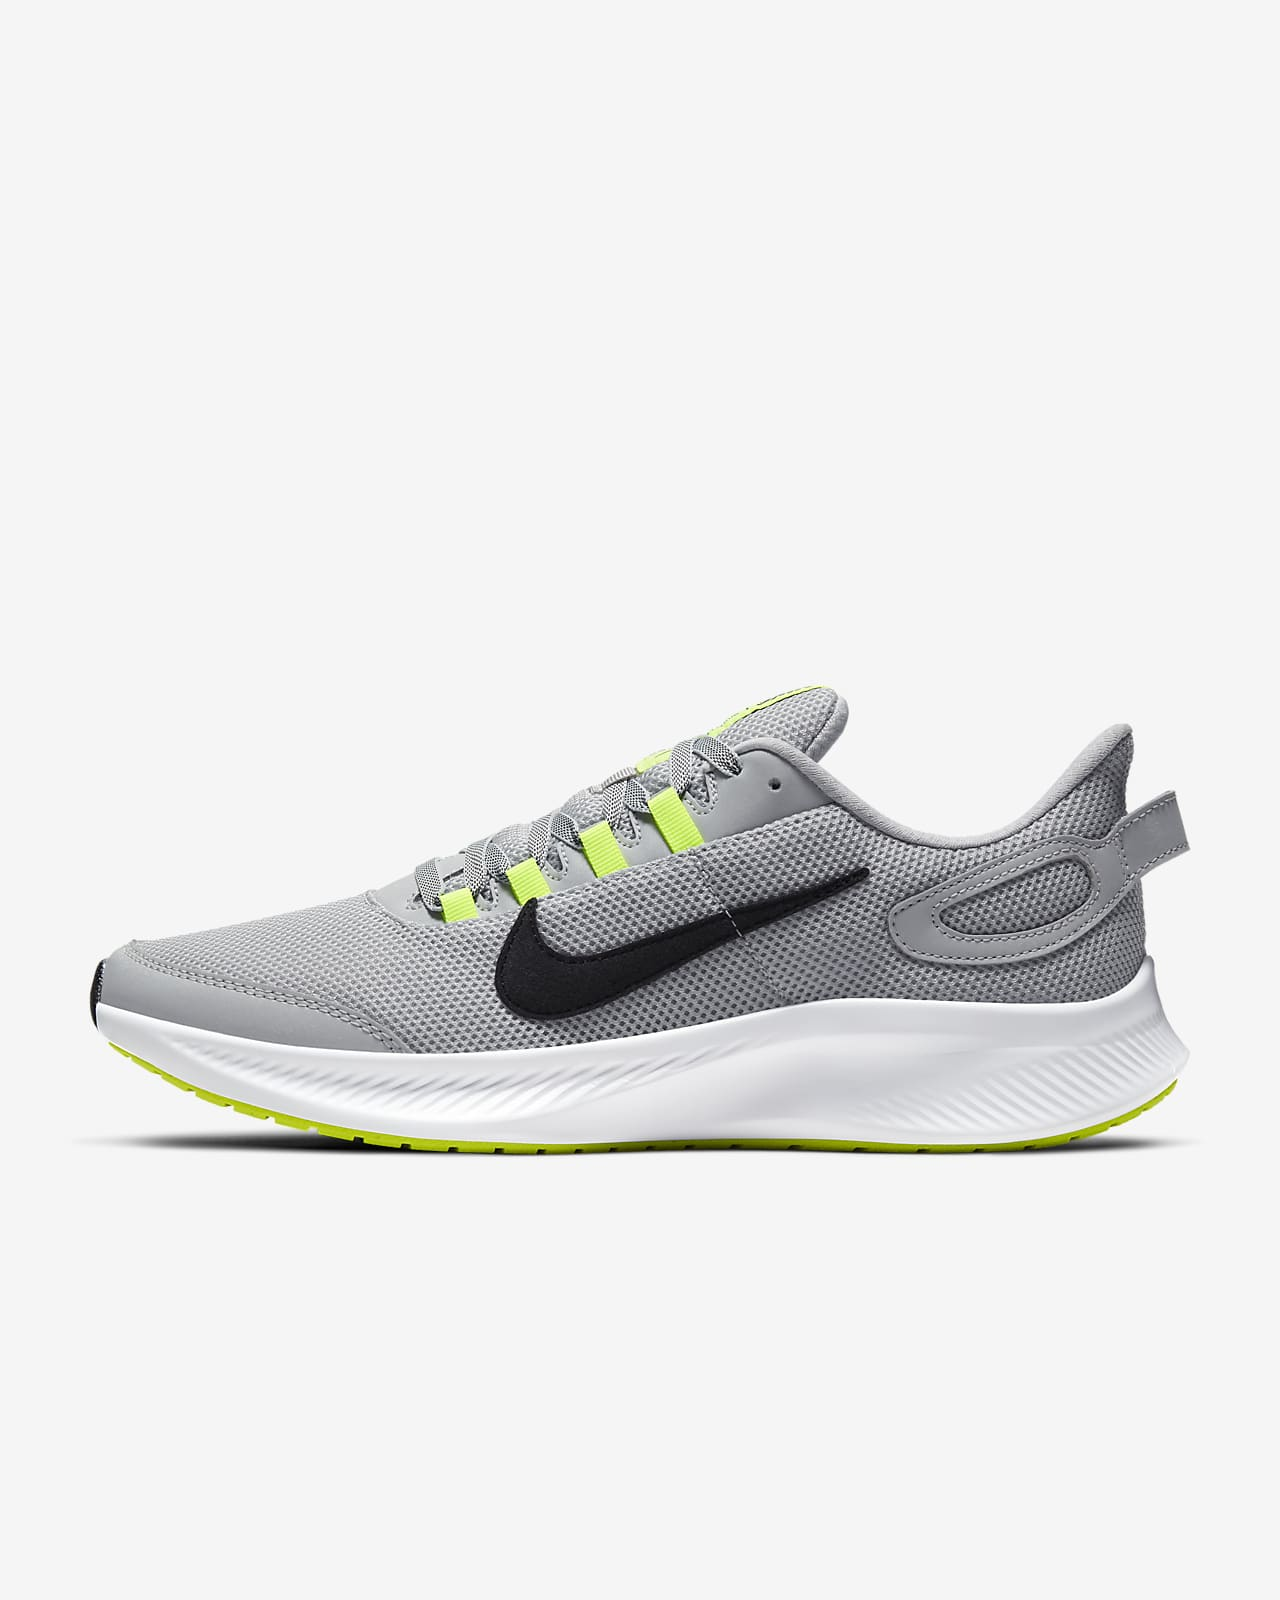 Arcaico delicadeza Tiza  Nike Run All Day 2 Zapatillas de running para hombre. Nike ES